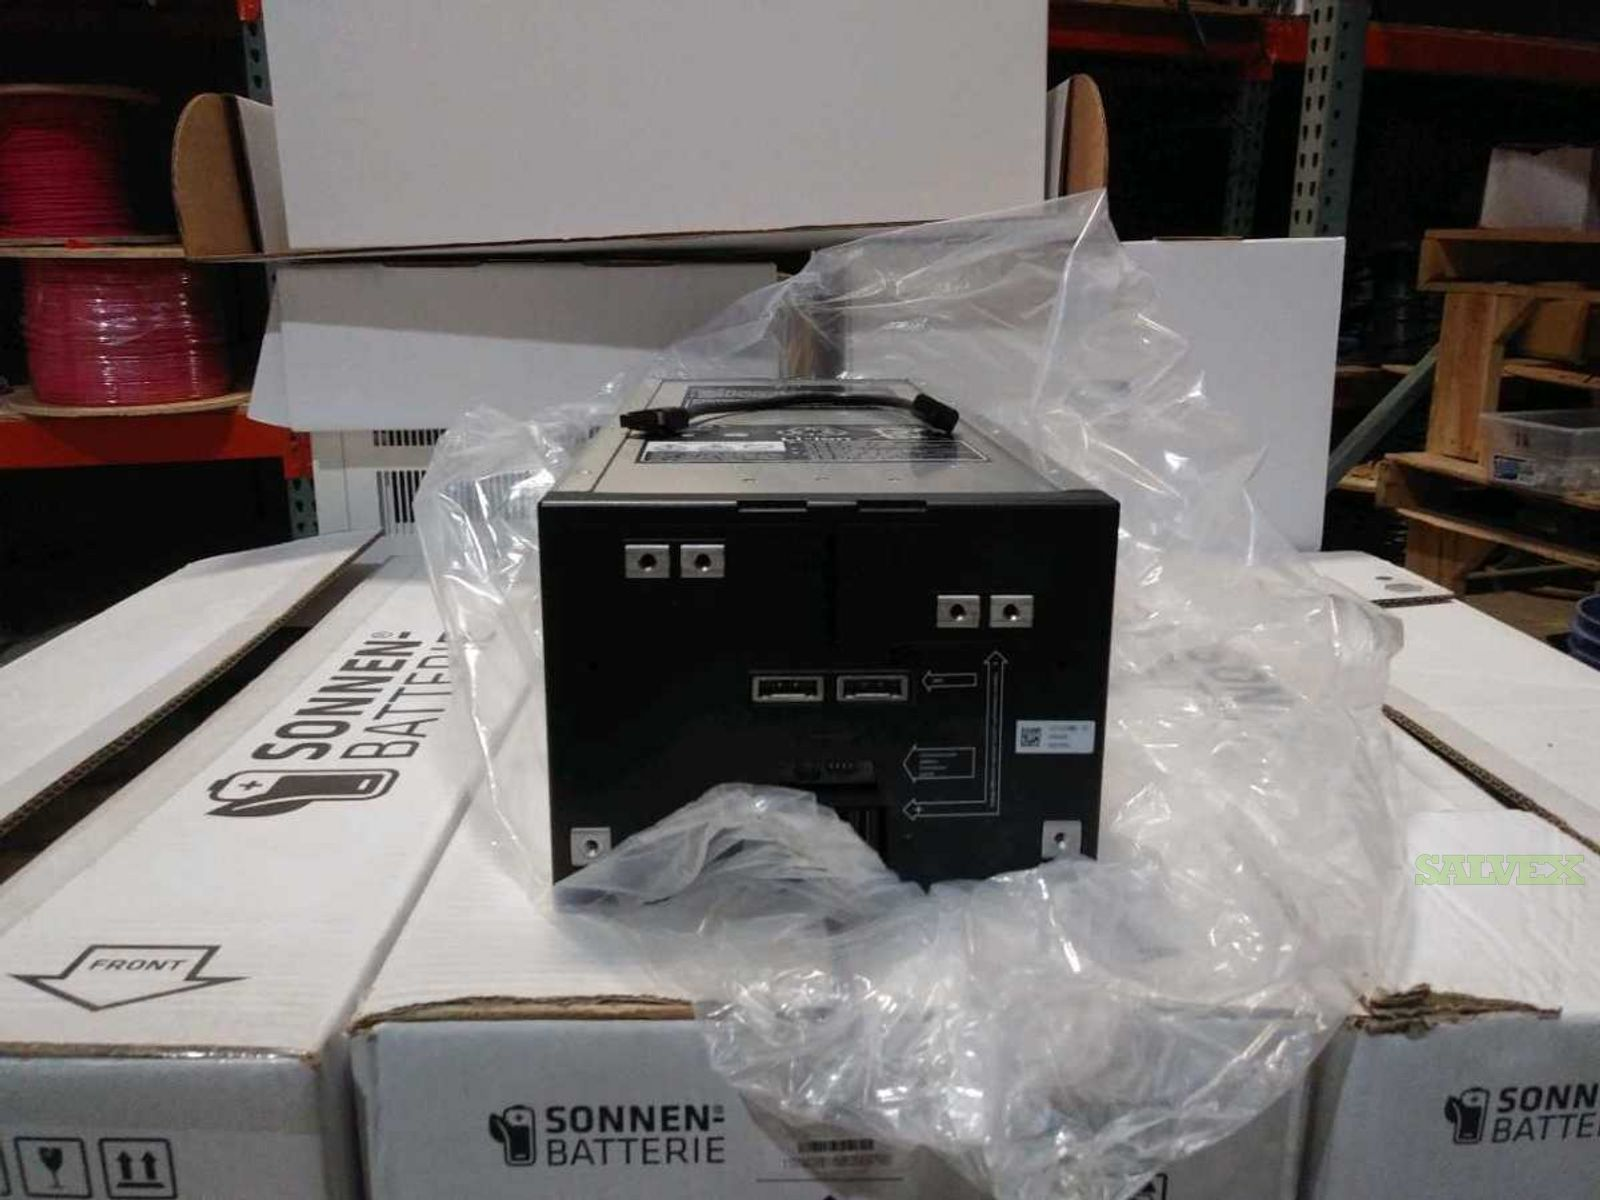 Sonnen 10kWh Battery Management Systems & Add-on Battery Boxes / Sony 2.0 kWh Battery Modules (15 Units)